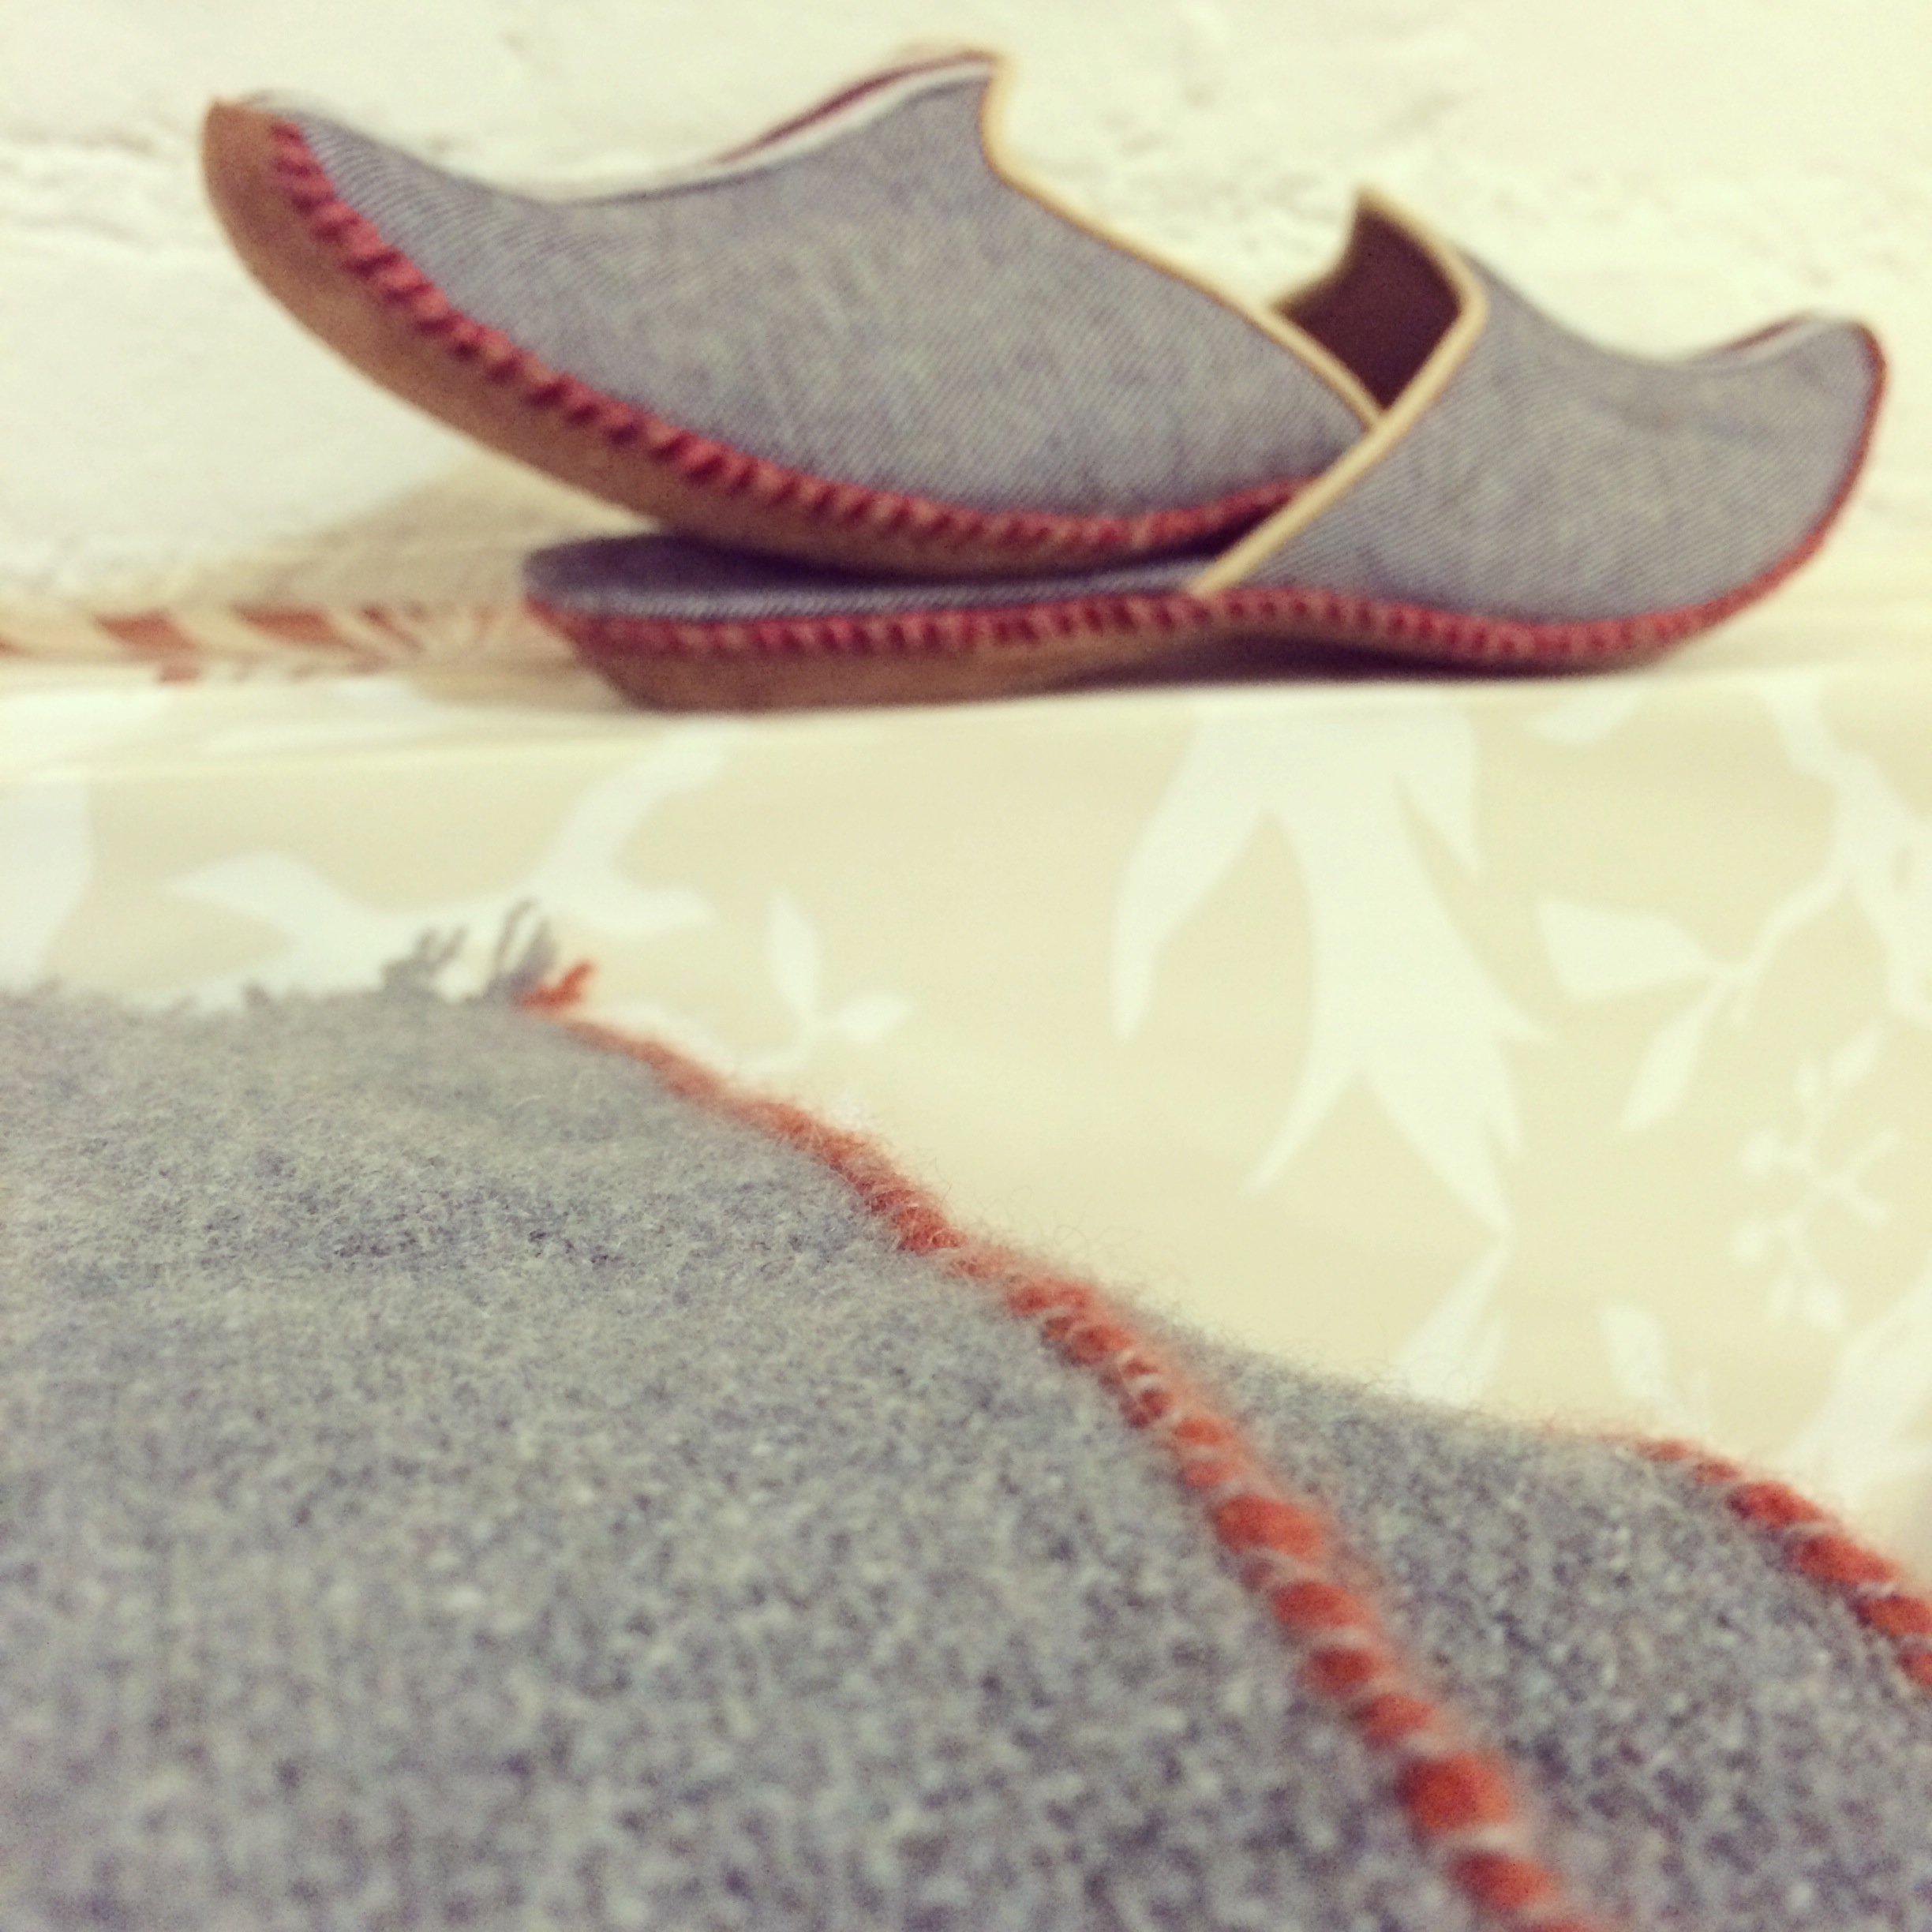 Handmade ottoman slippers made from selvedge denim by craftsmen in Sarajevo with cashmere throw by Teixidors